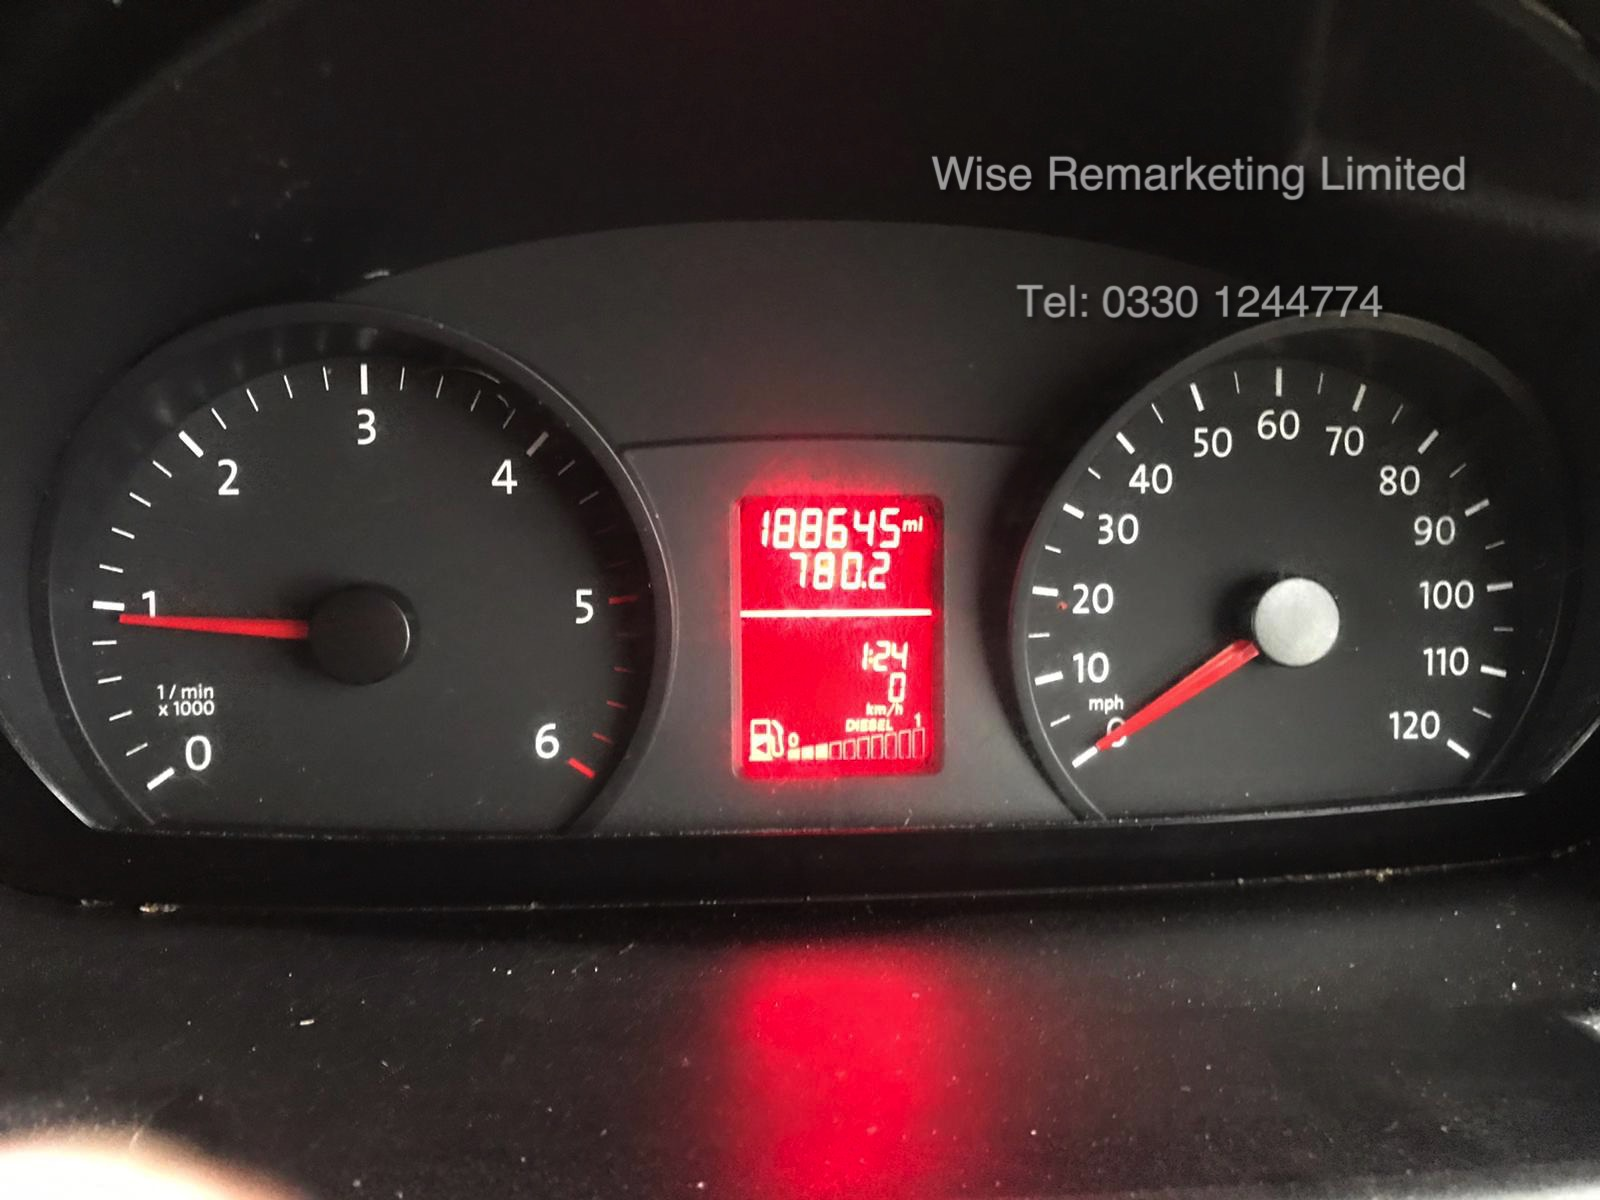 Volkswagen Crafter CR35 Startline 2.0l TDi - LWB - 2016 Model -1 Keeper From New - Service History - Image 15 of 15